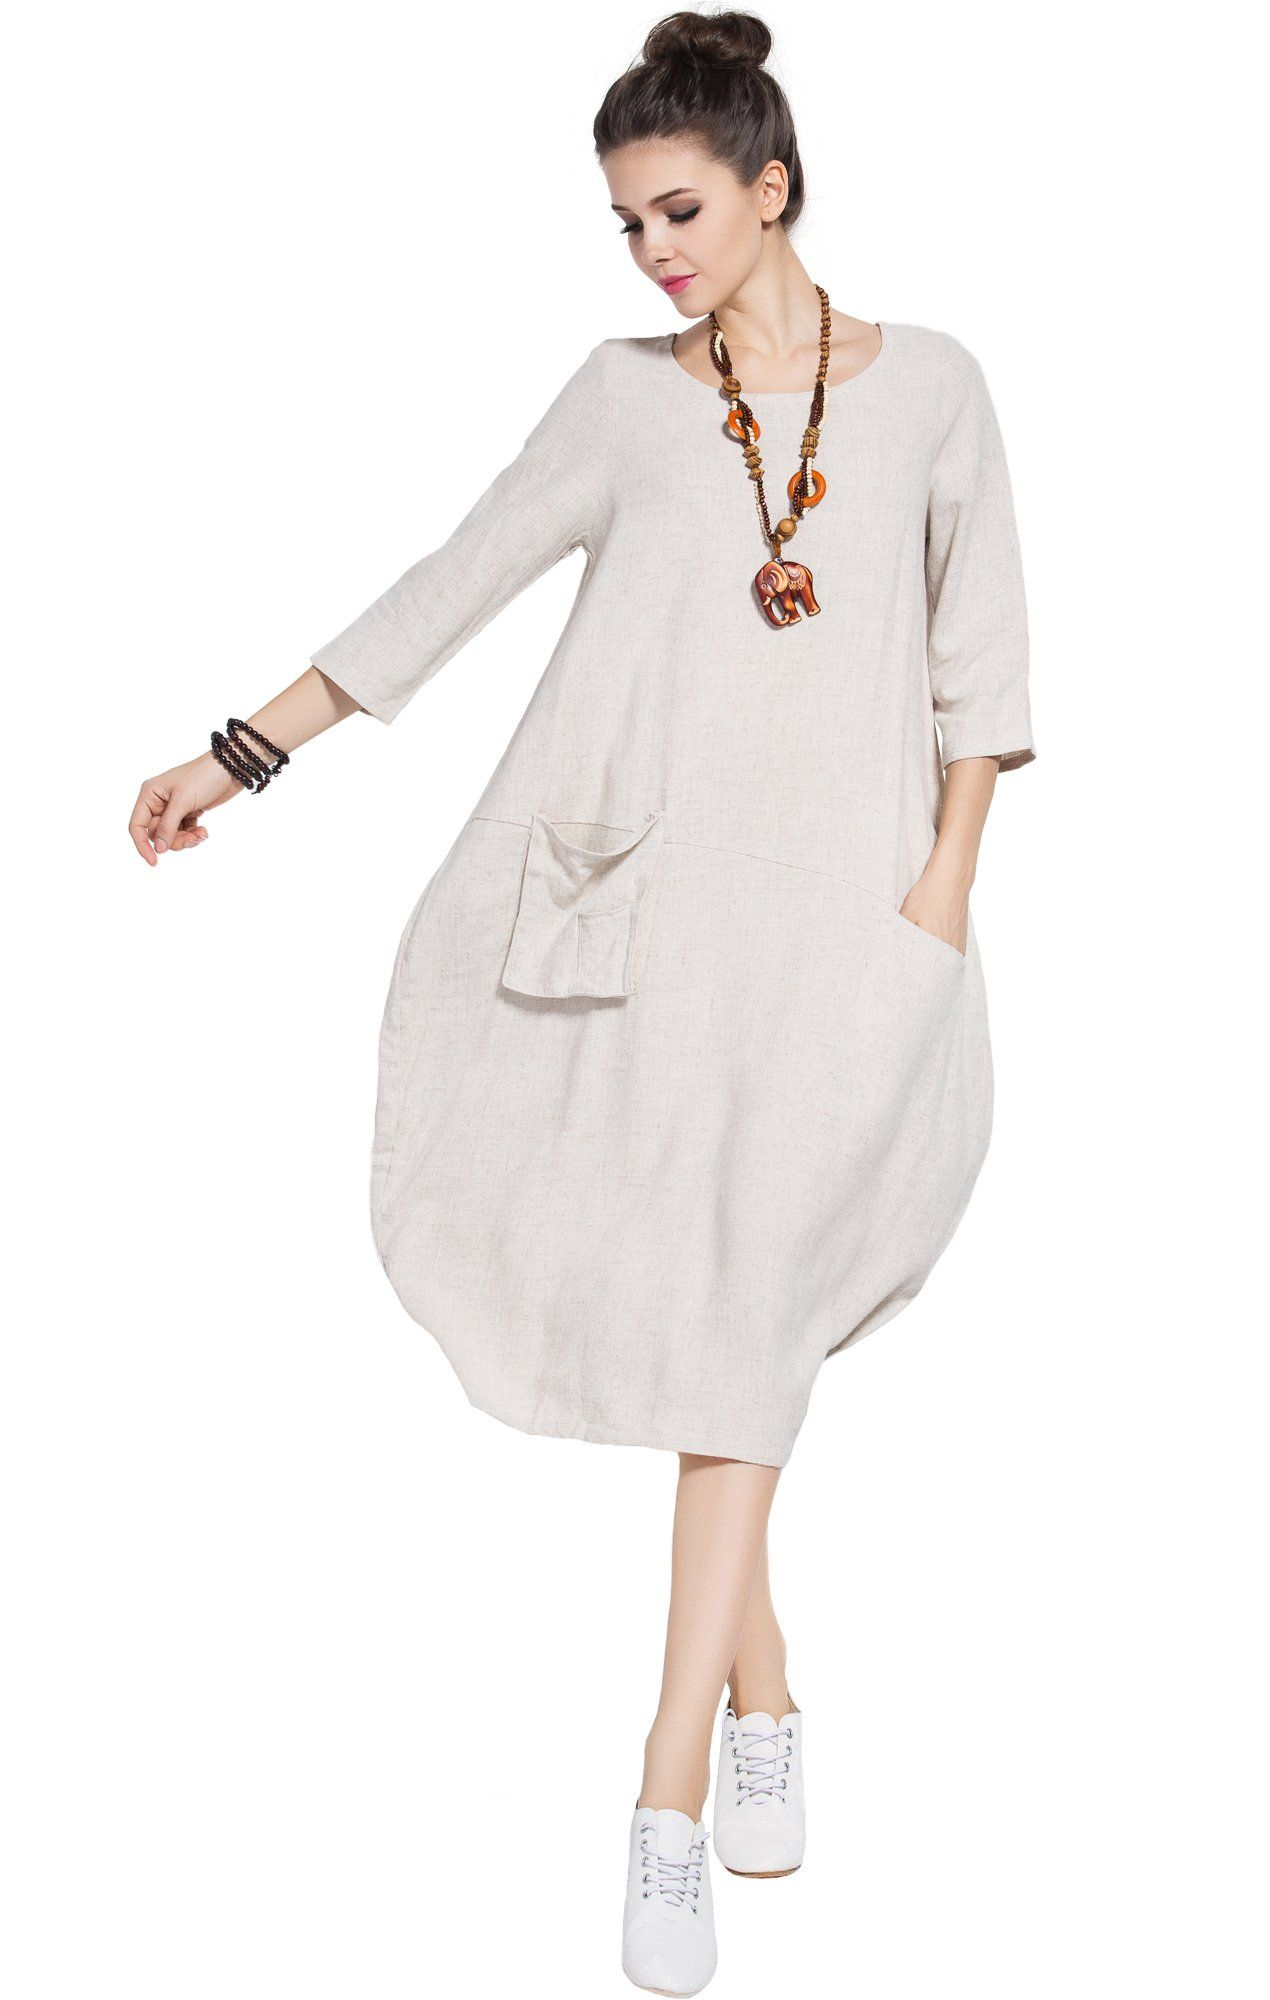 e6da8c74b5 Maternity Fashion - cool maternity dresses   Anysize Soft Linen Lantern Loose  Dress Spring Summer Fall Plus Size Clothing Y19 Beige Small Tag 93   Go to  the ...